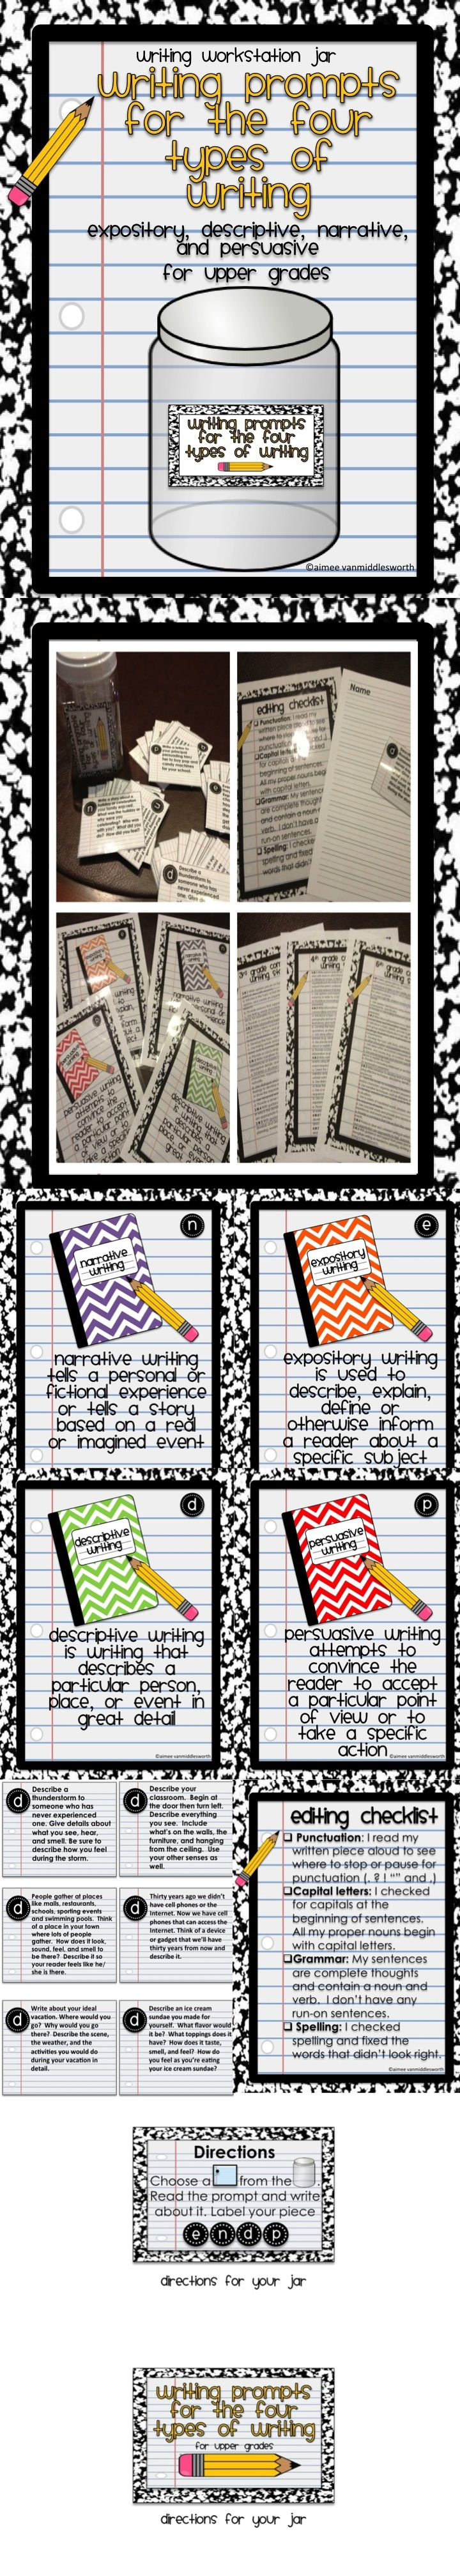 Common Core Writing Prompts for the 4 Types of Writing (expository, narrative, persuasive, and descriptive).  Includes anchor chart for each writing type, common core writing standards for grades 3-5, editing checklist, writing prompts, label and directions for your jar, writing paper templates!